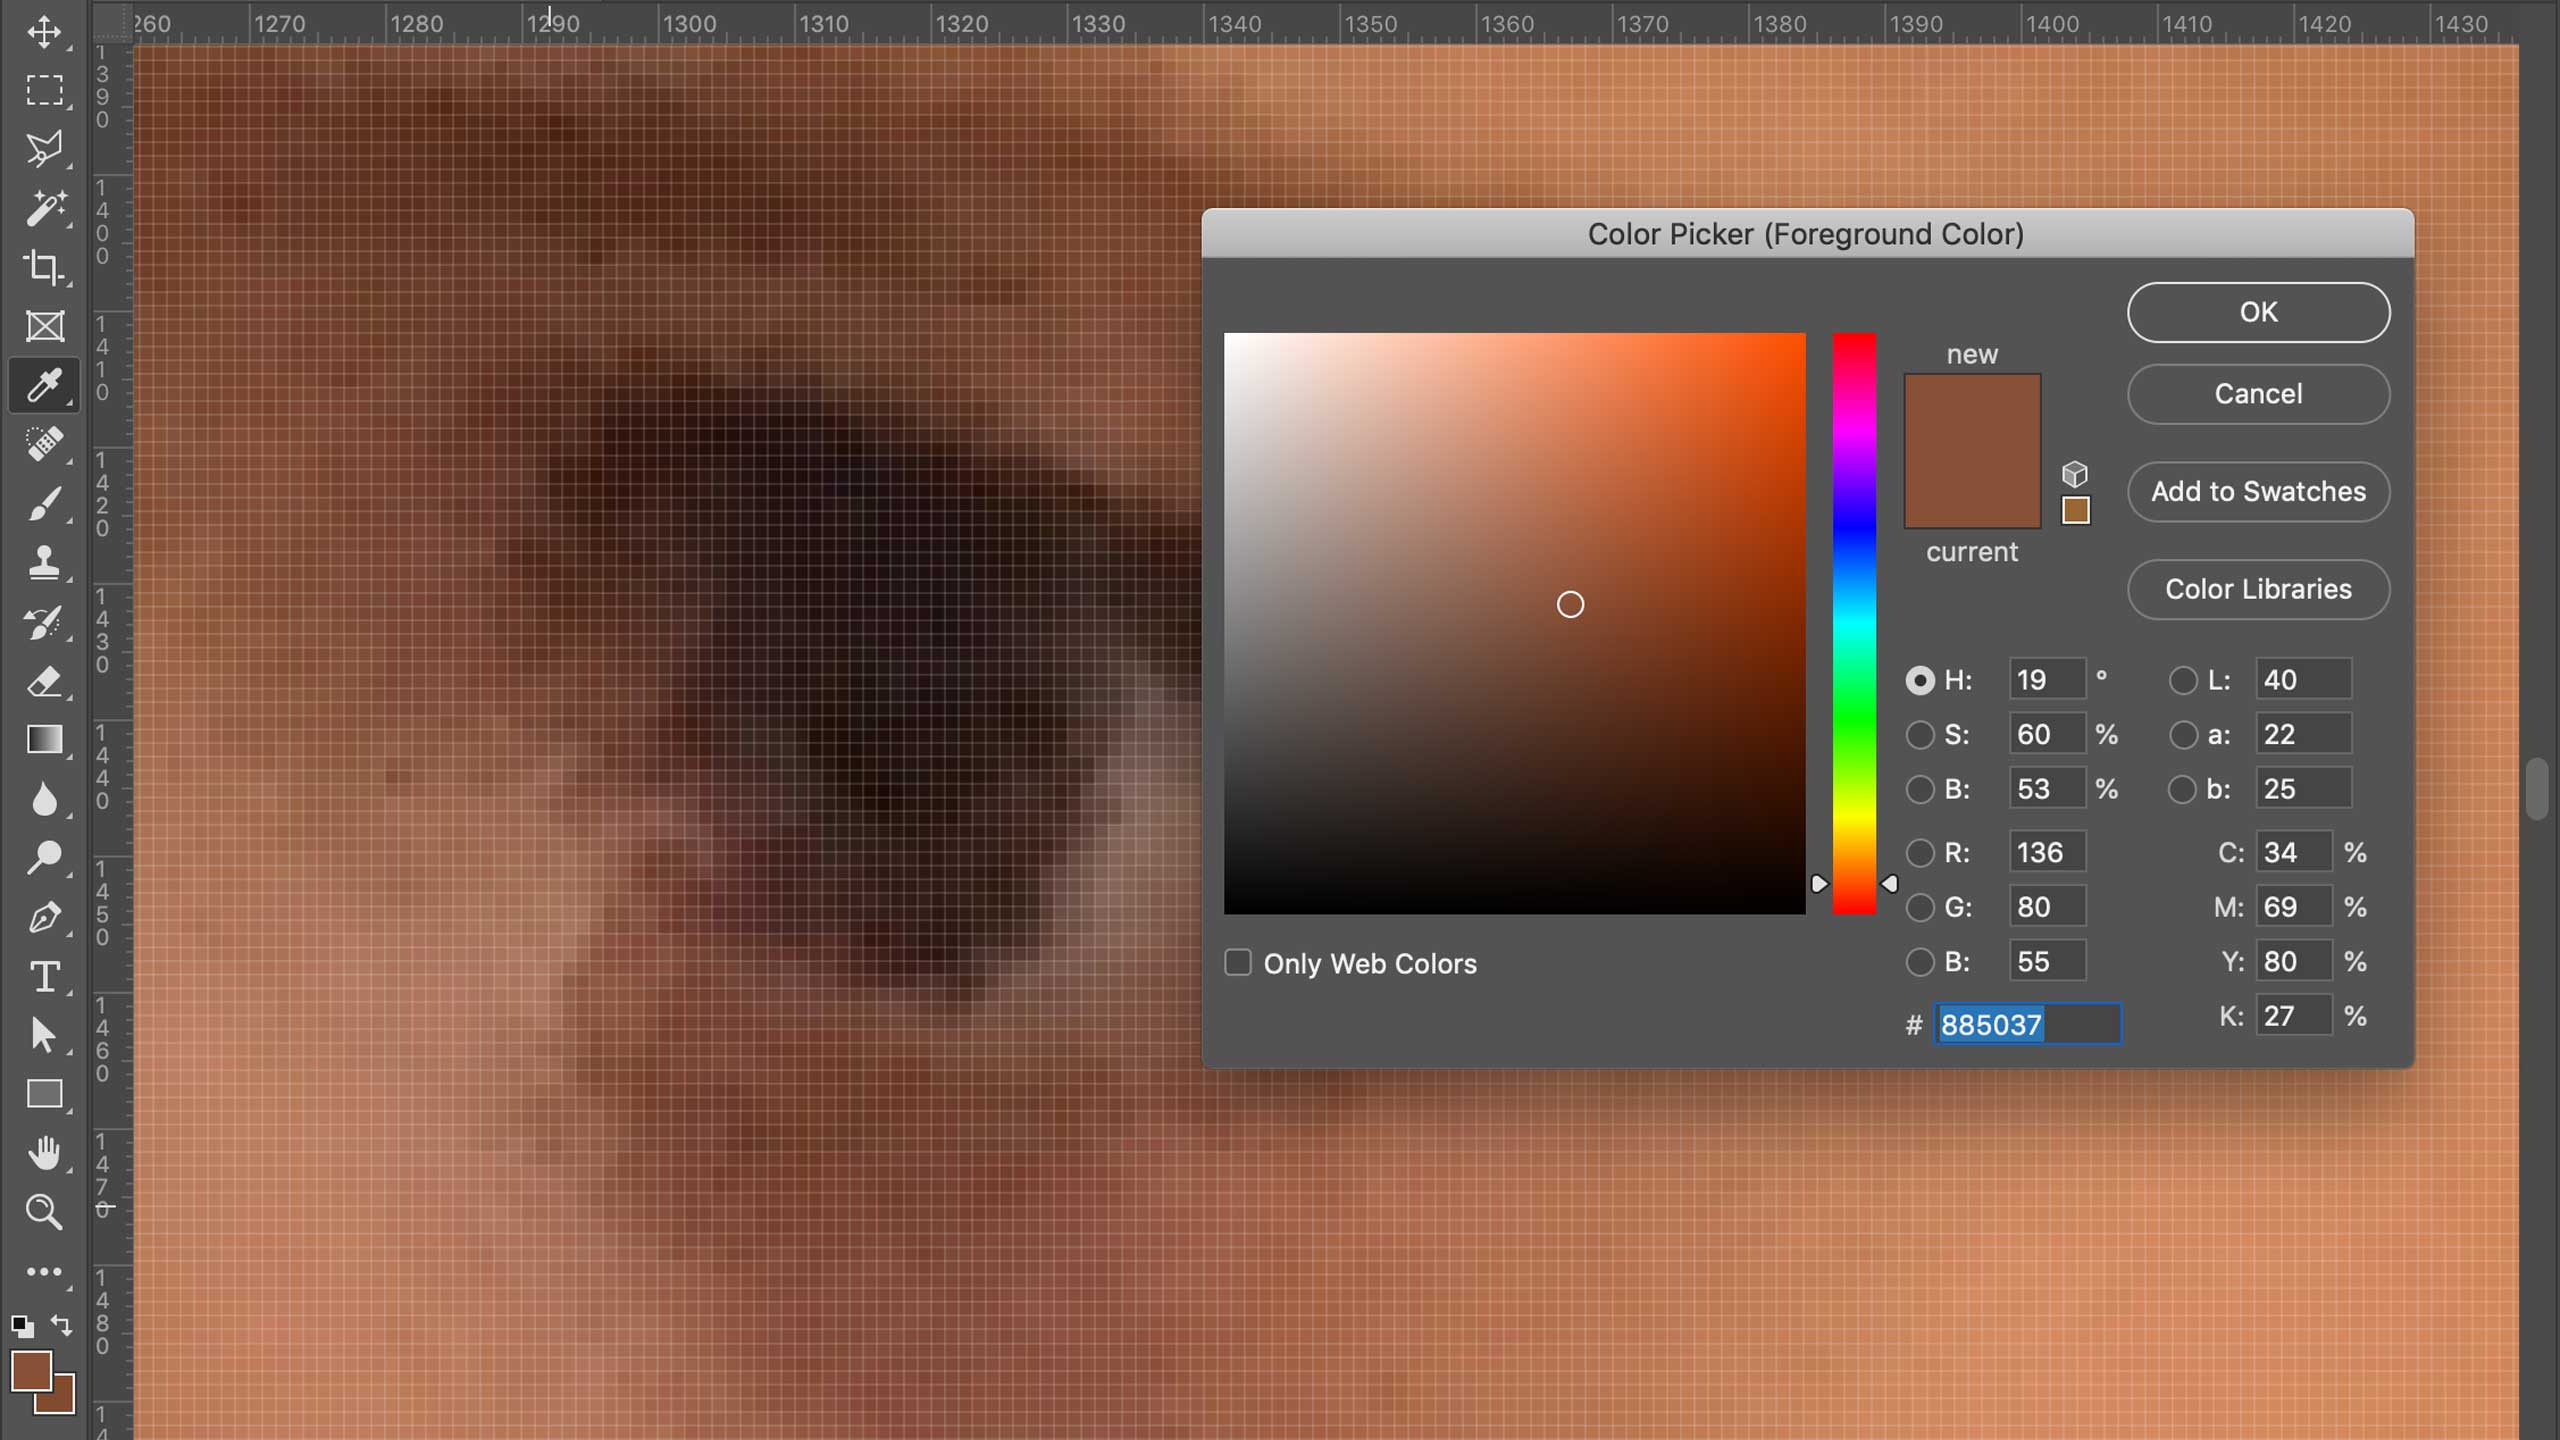 A color picker panel appears, showing numerical formulas for the selected color